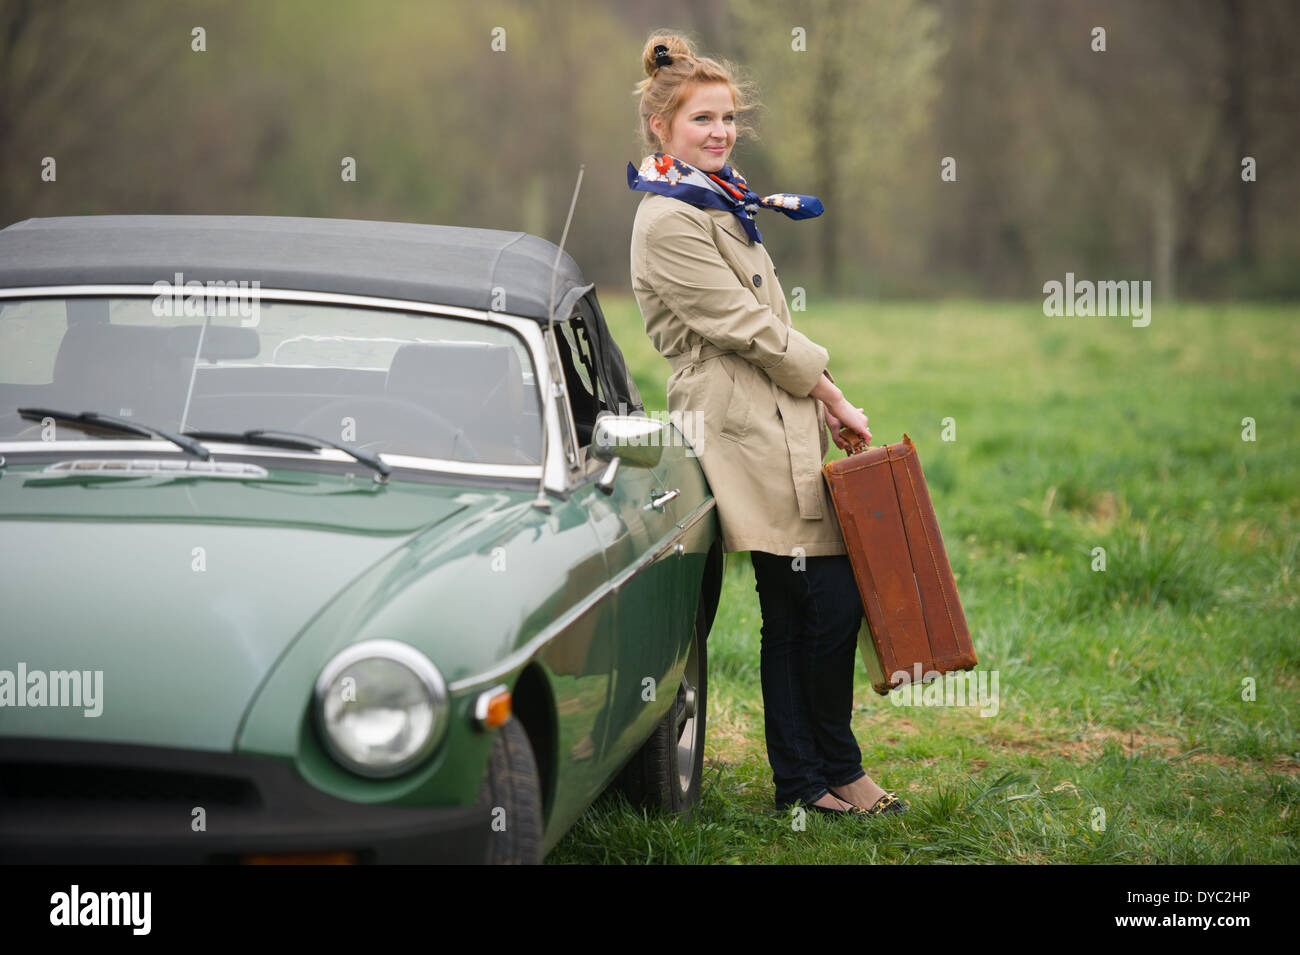 Woman with packed bags on journey next to classic british sports car - Stock Image